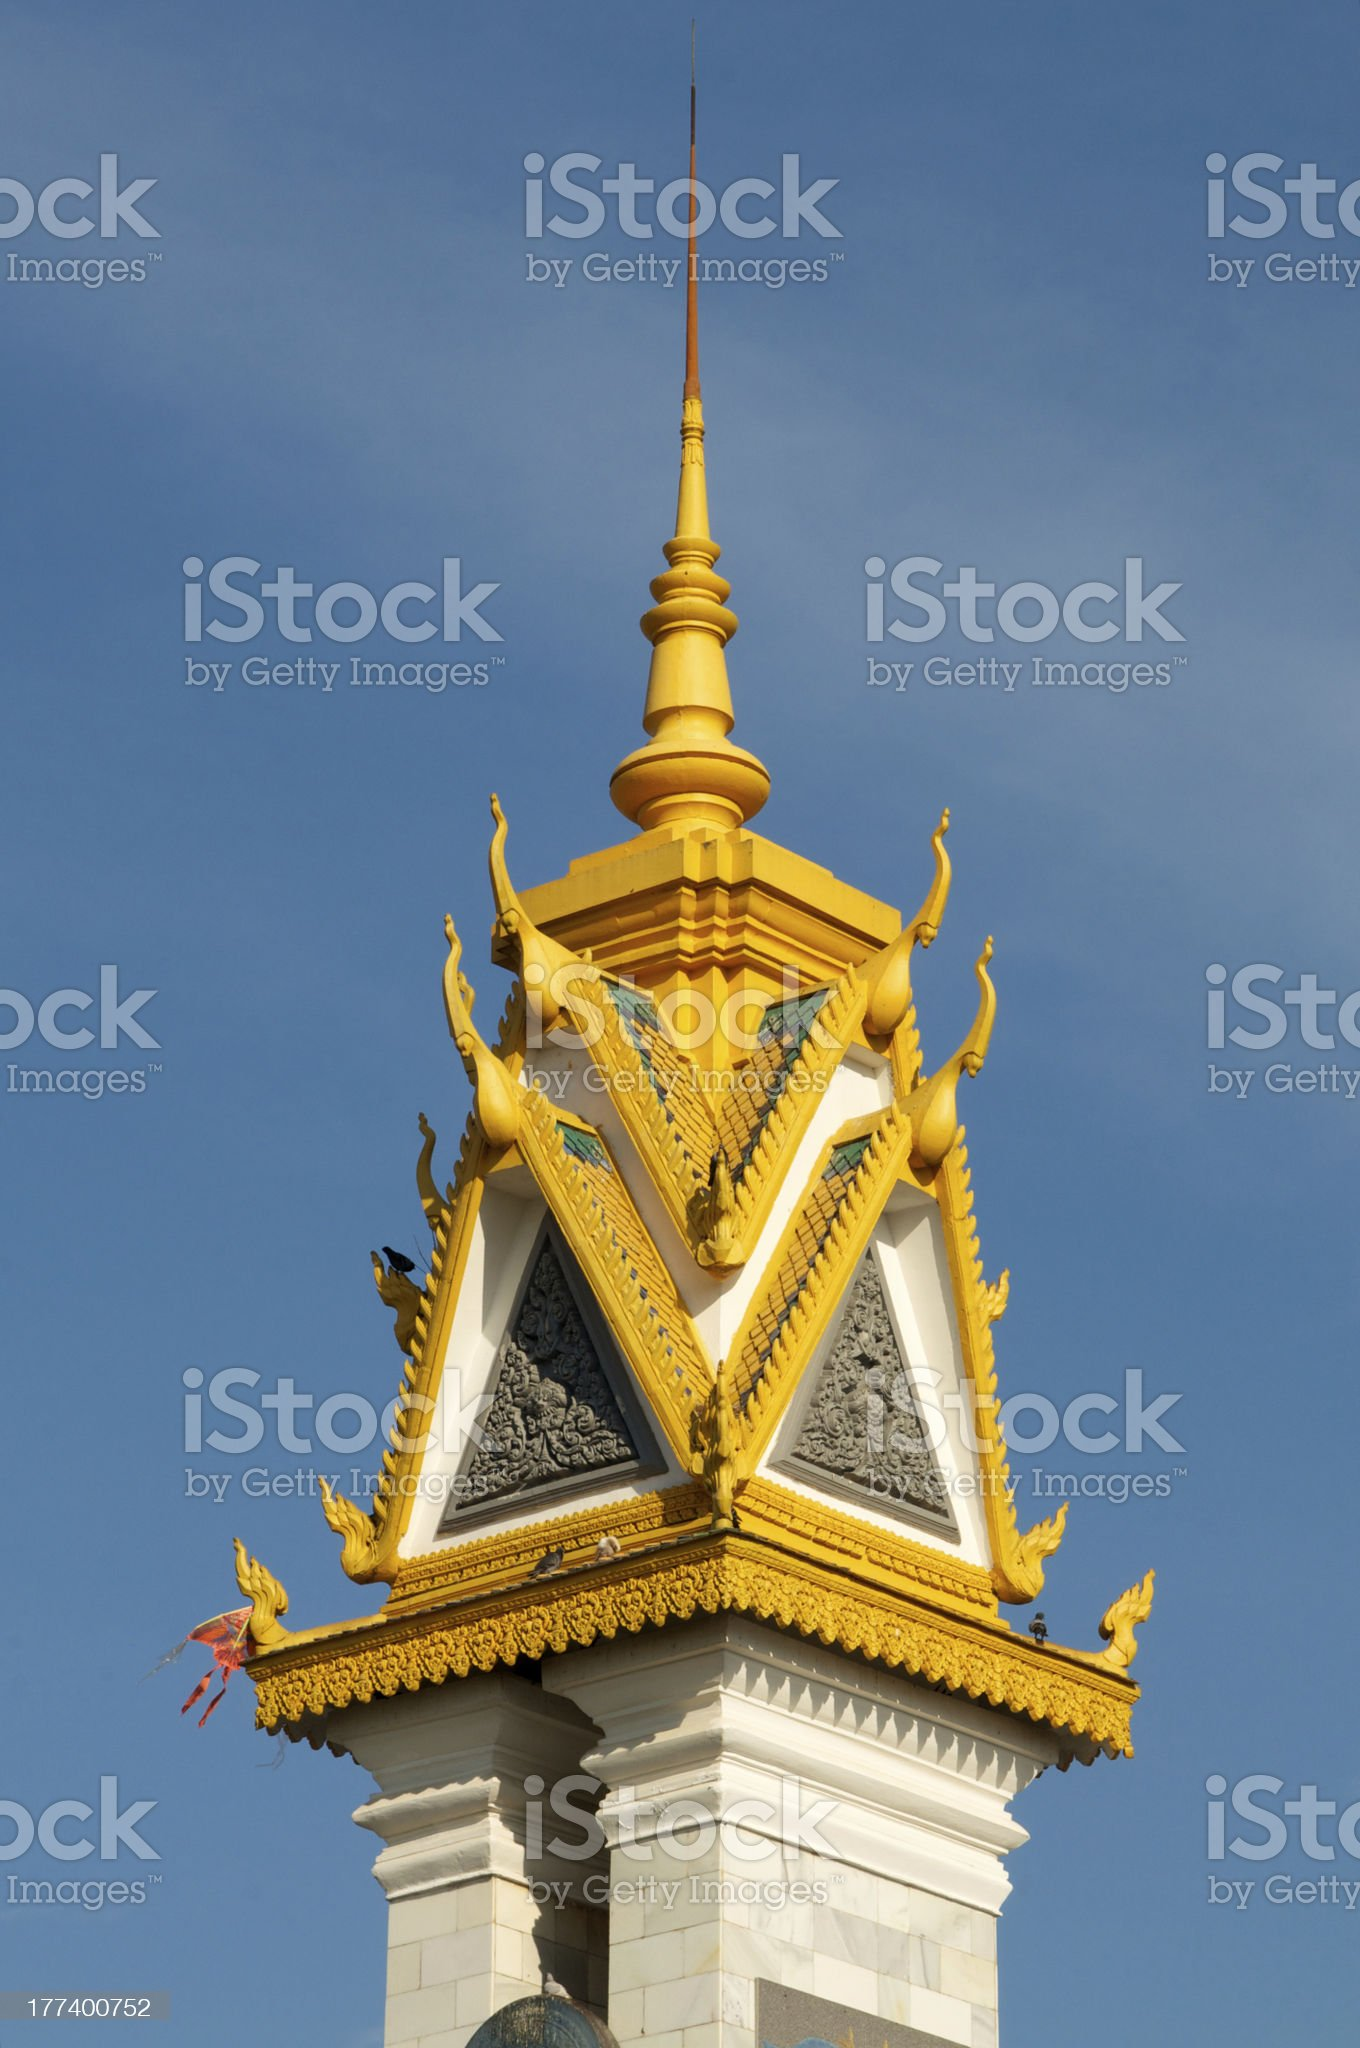 Spires of Cambodian Royal Palace Building. royalty-free stock photo